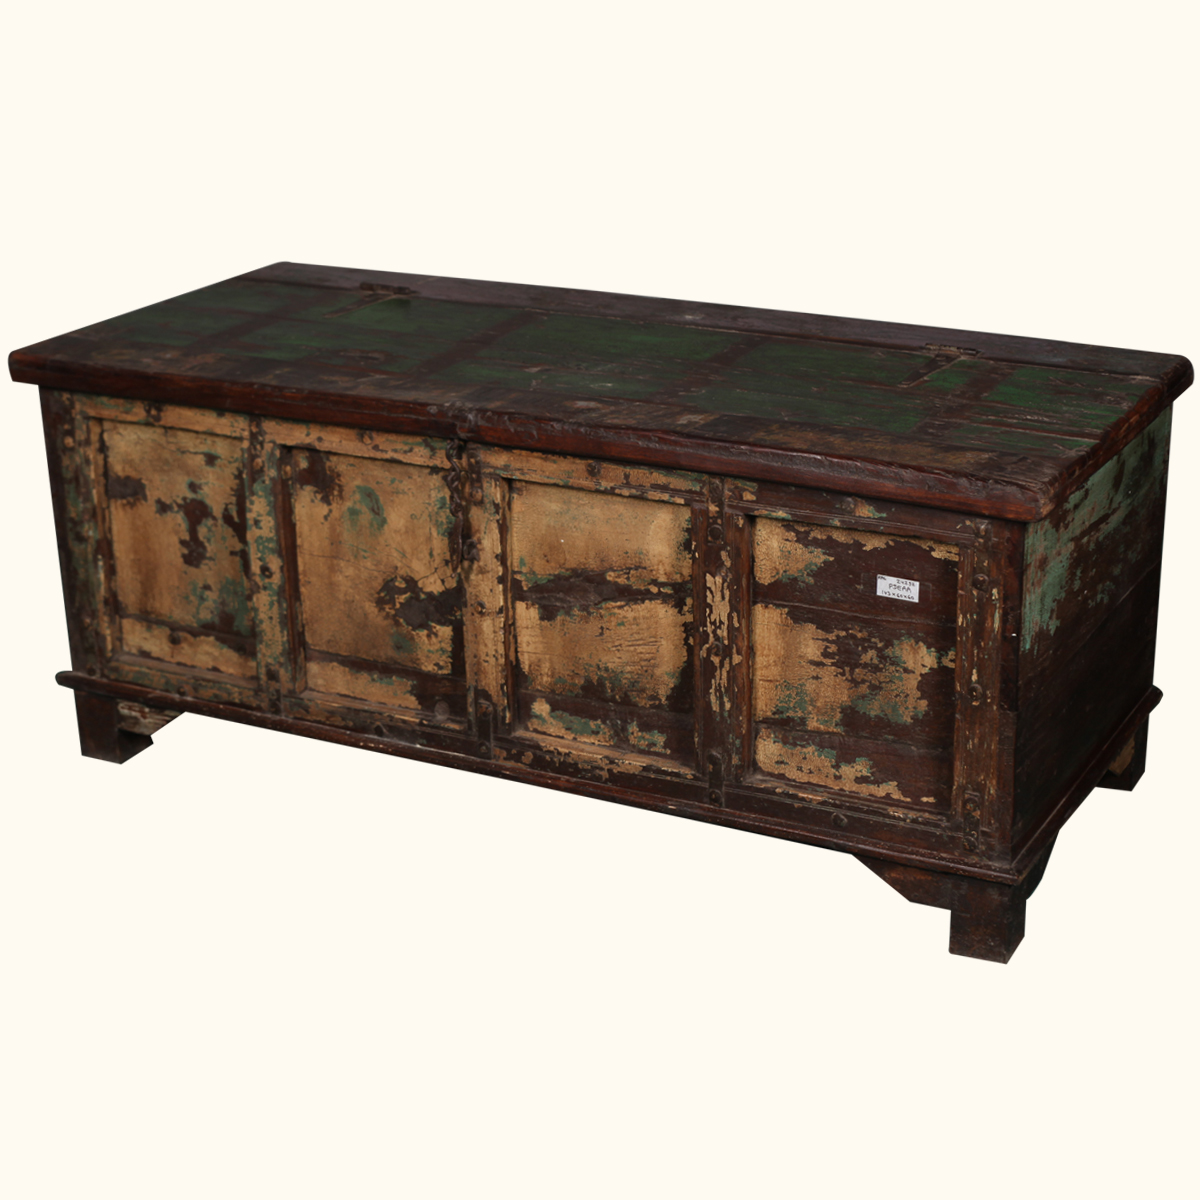 Storage Box Coffee Table Rustic Distressed Reclaimed Wood Antique Style Trunk Ebay